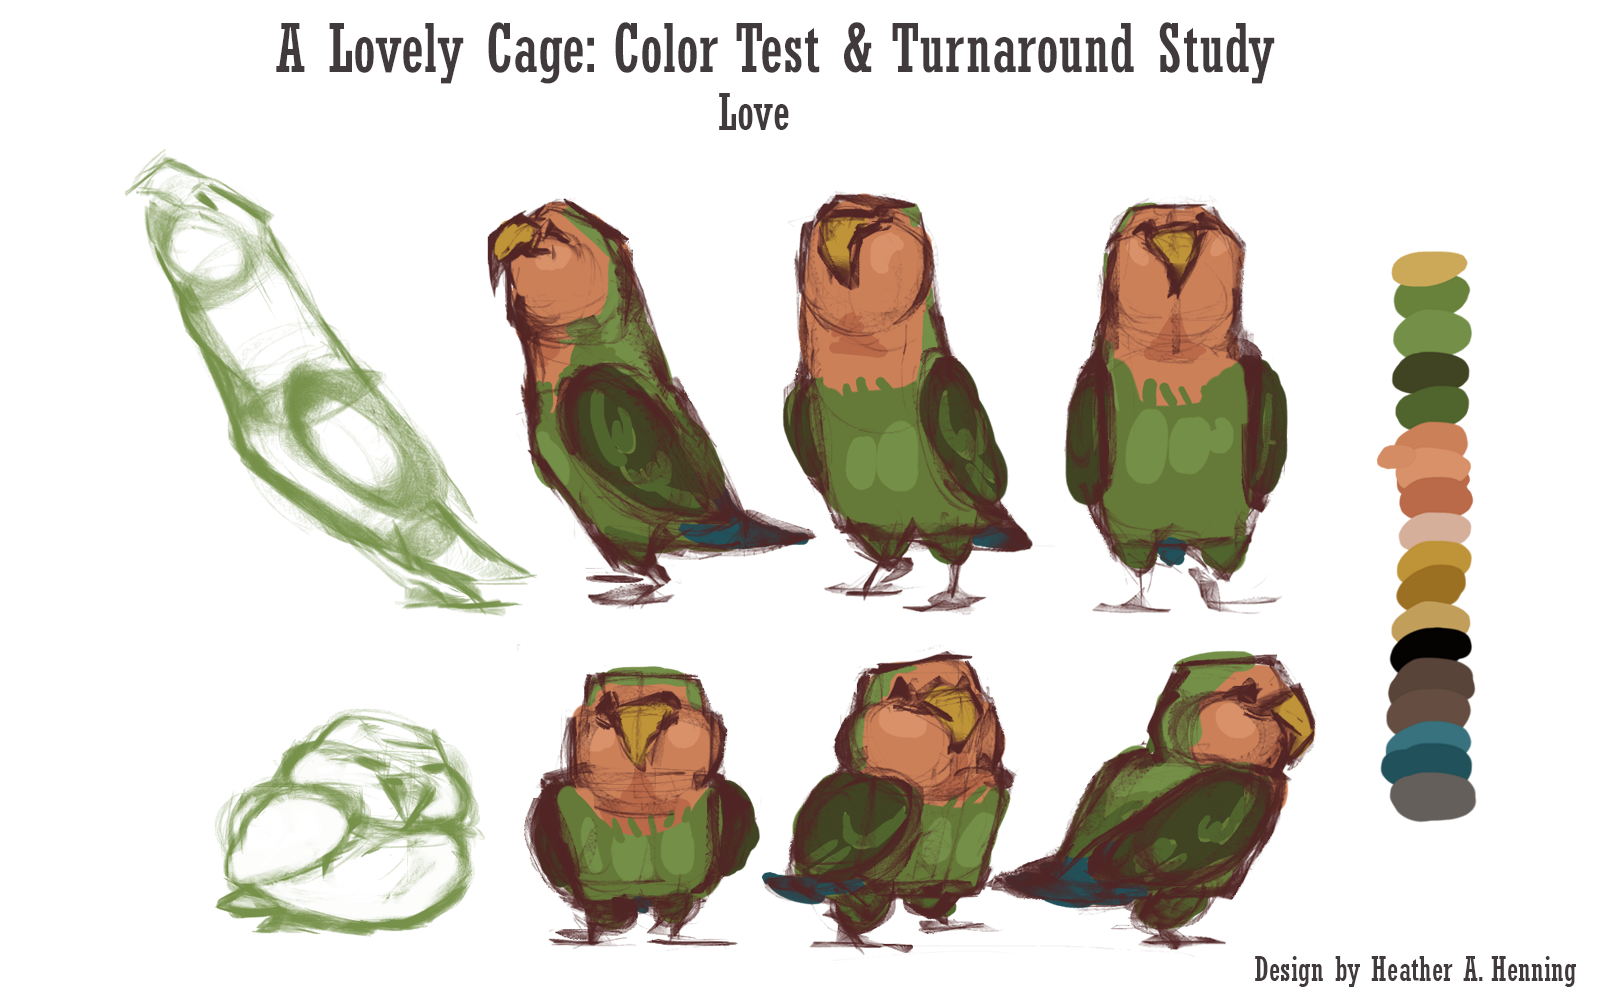 Color Test & Treatment study